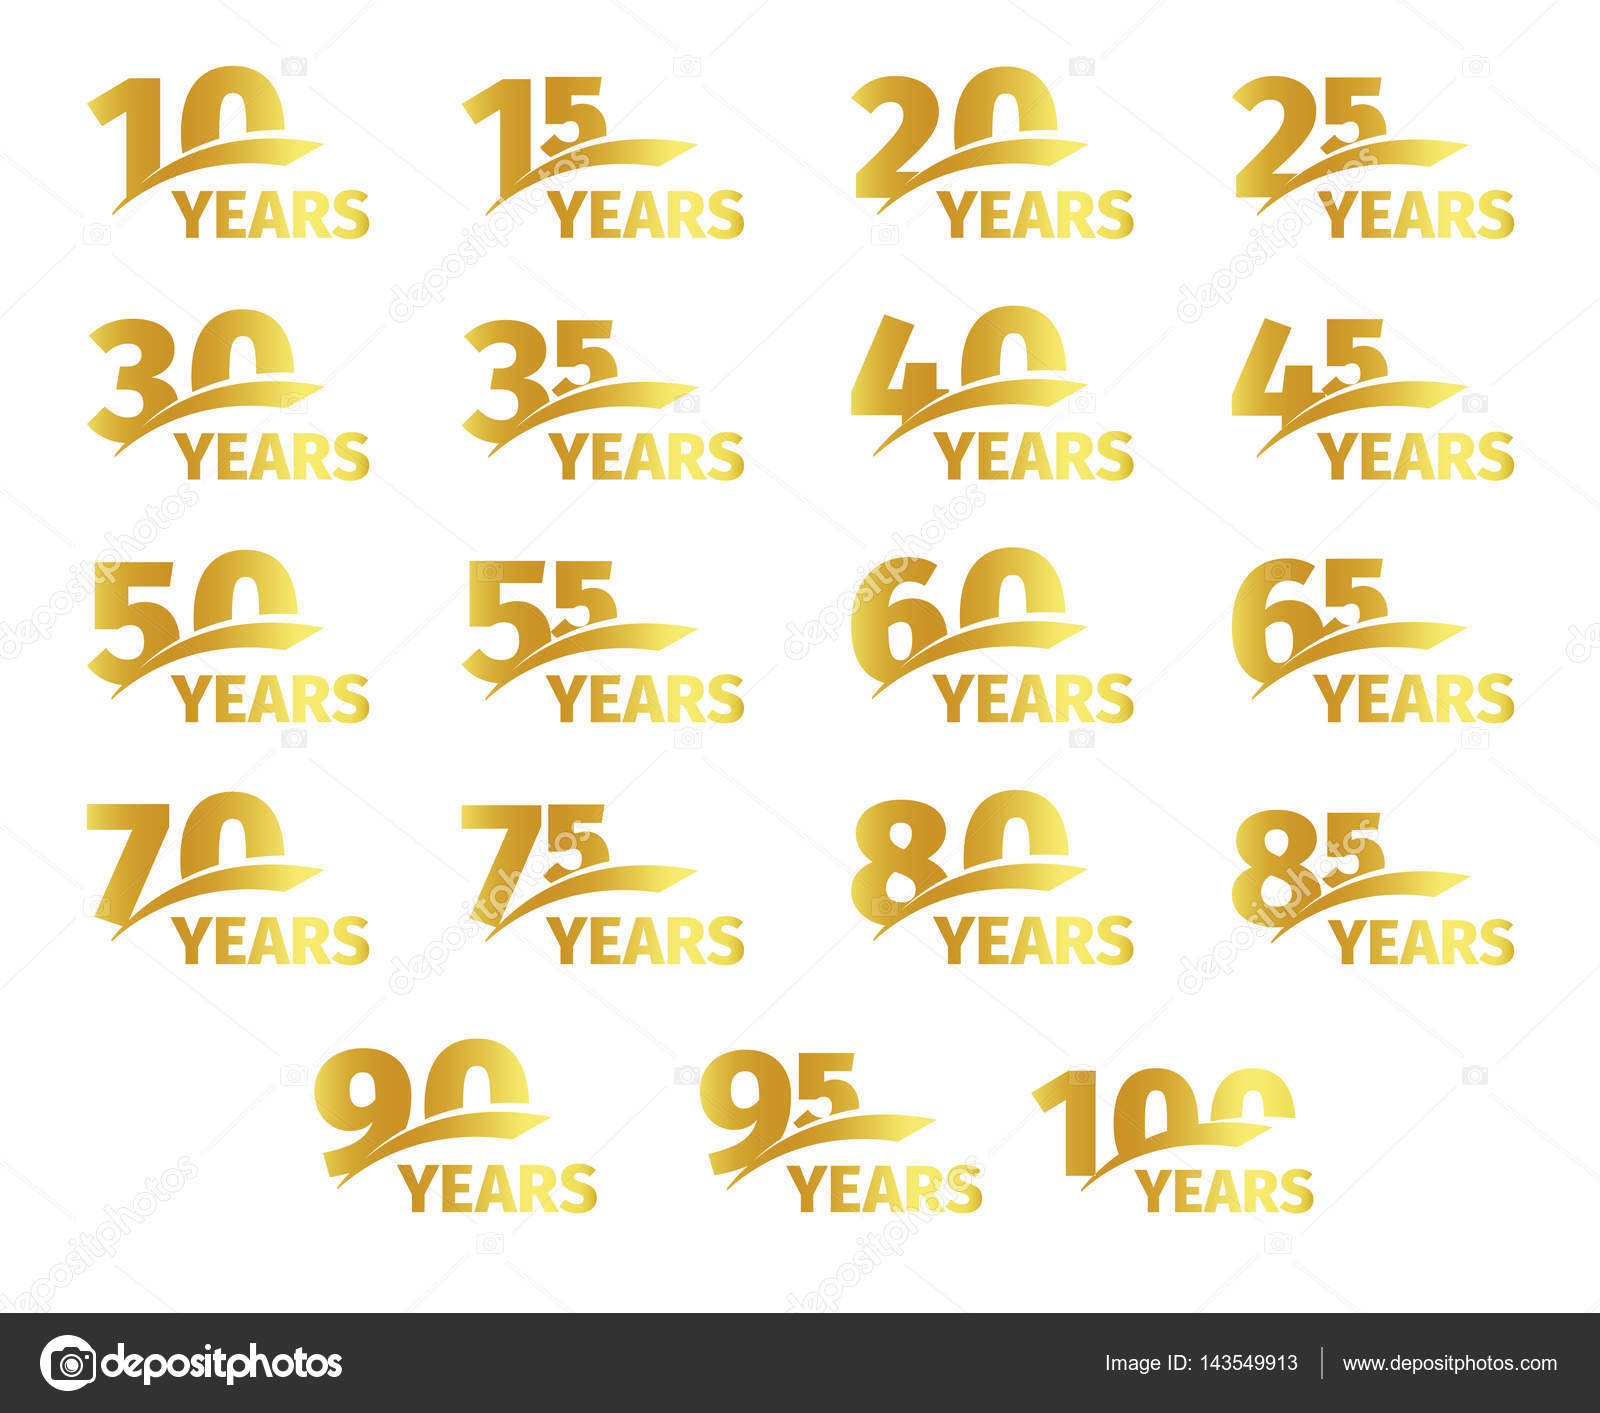 Isolated golden color numbers with word years icons collection on isolated golden color numbers with word years icons collection on white background birthday anniversary greeting kristyandbryce Choice Image